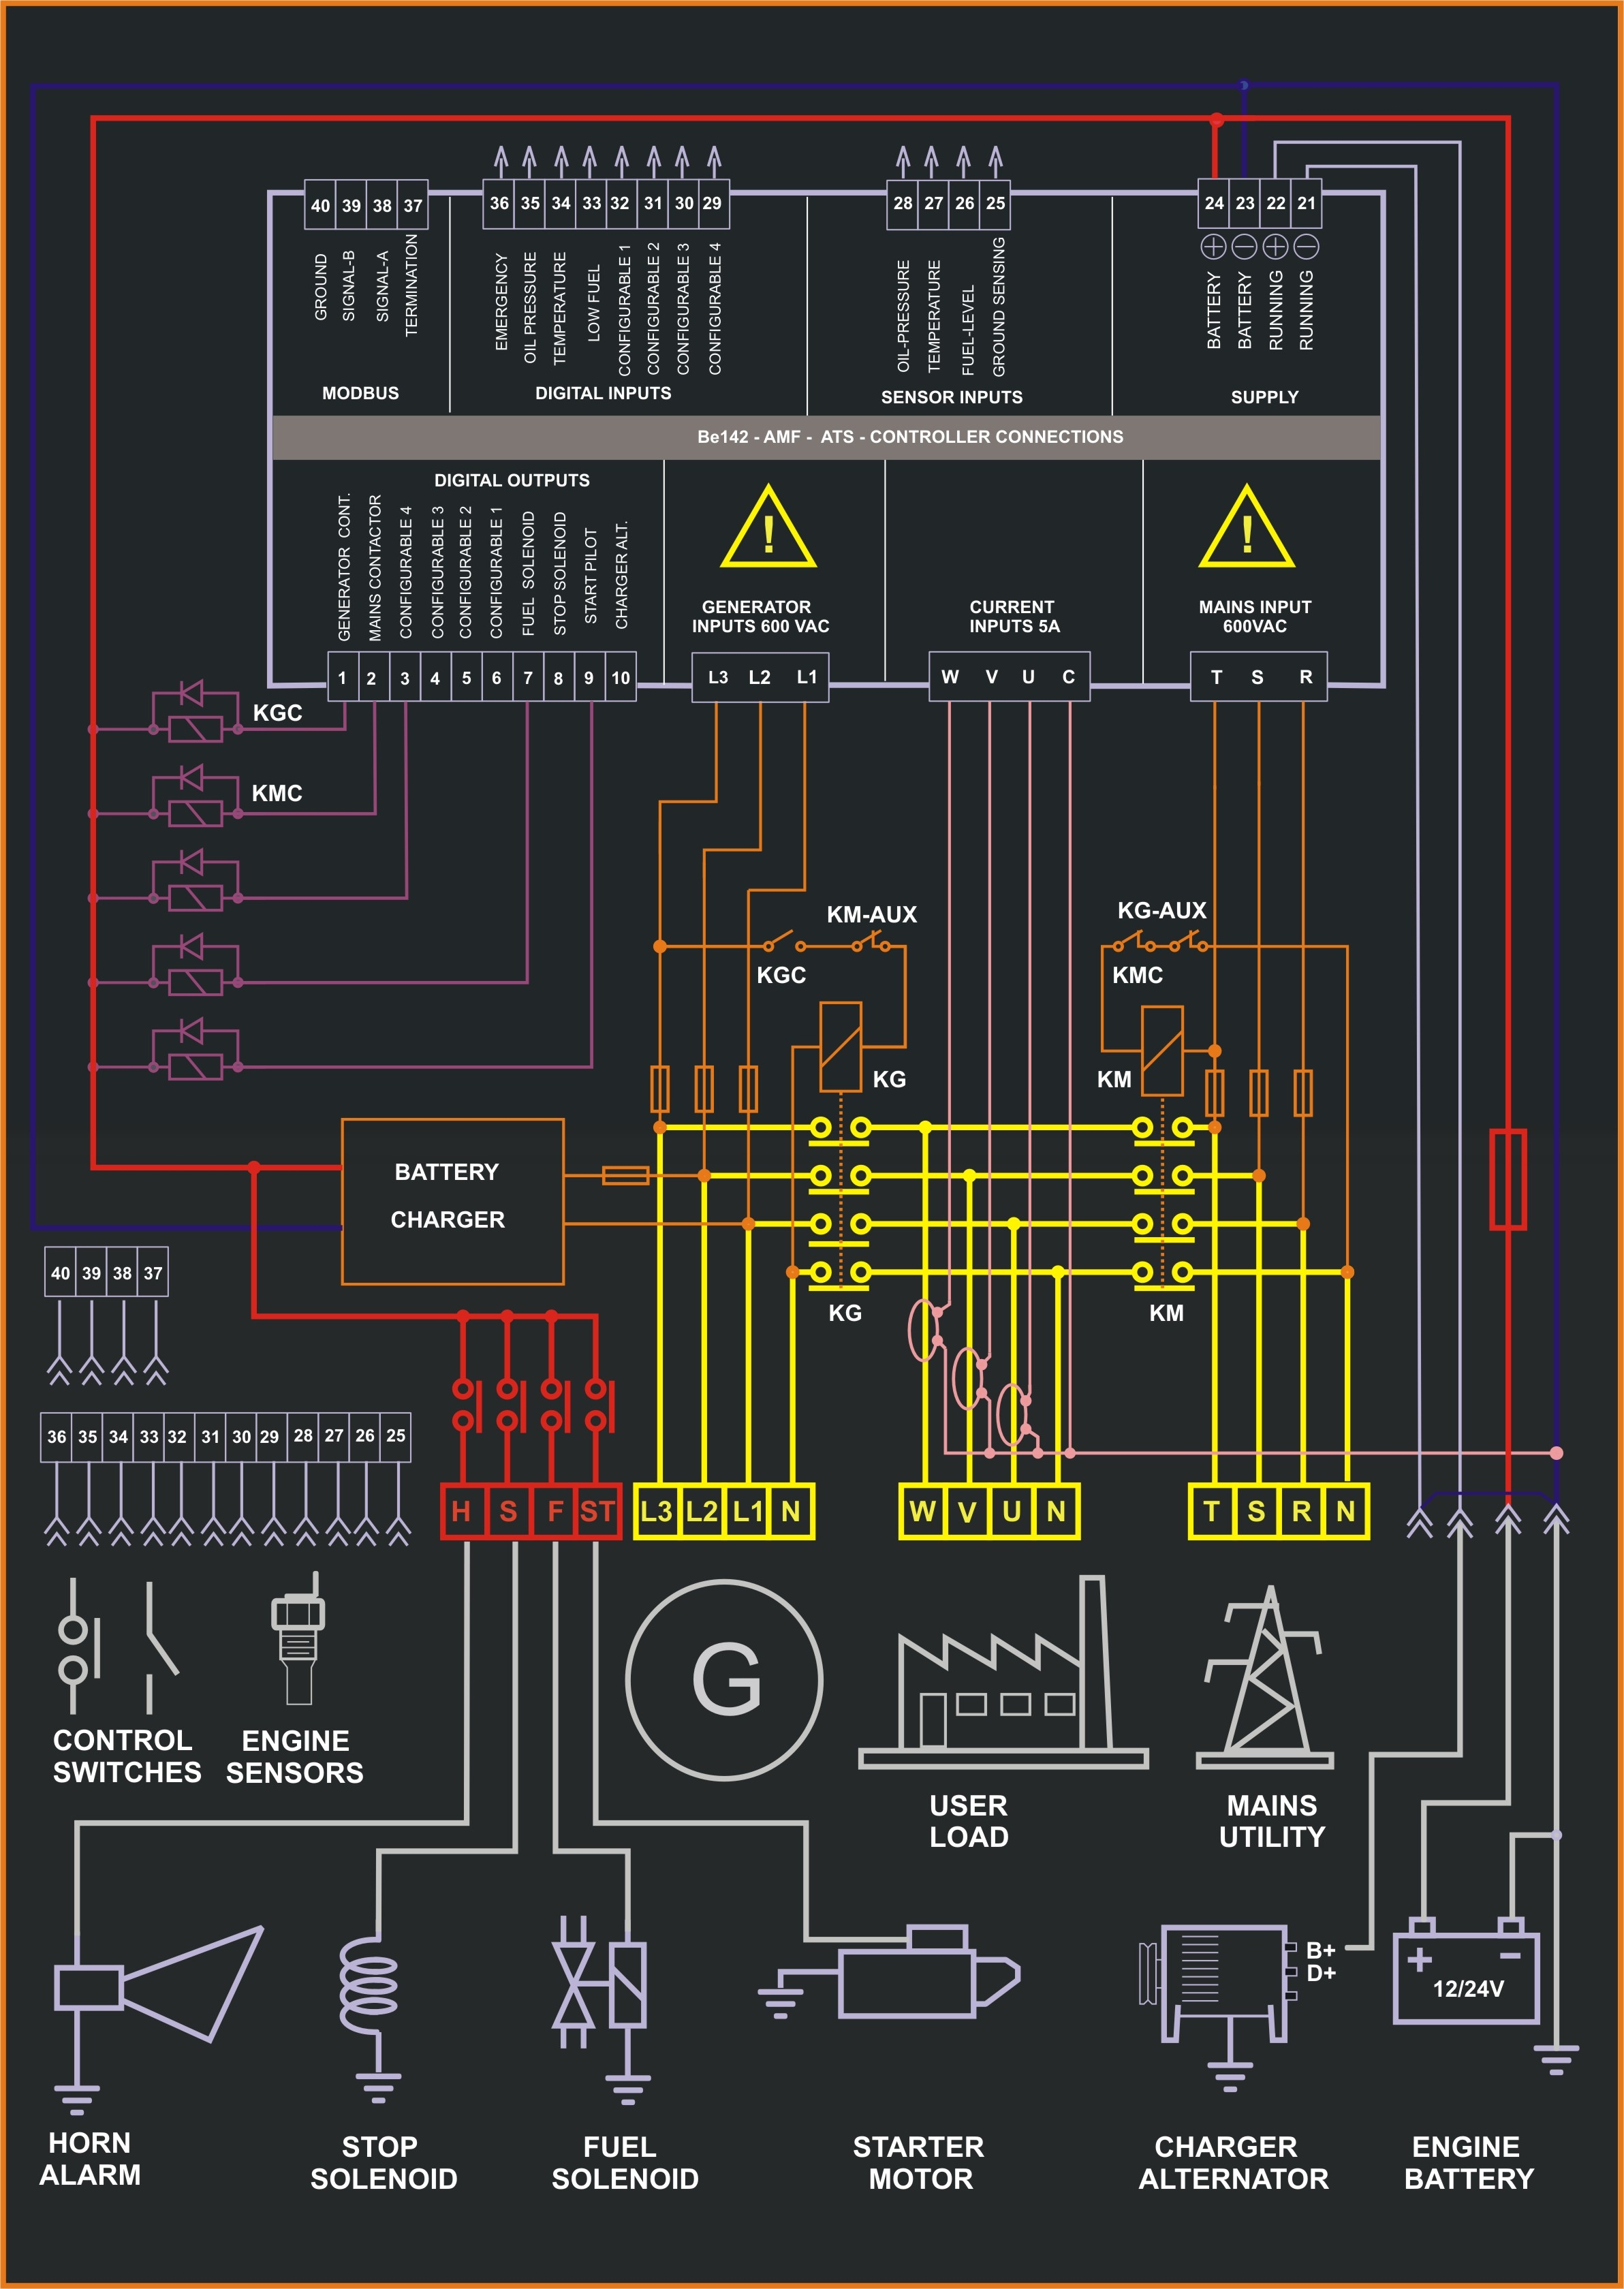 Basic Control Wiring Diagram